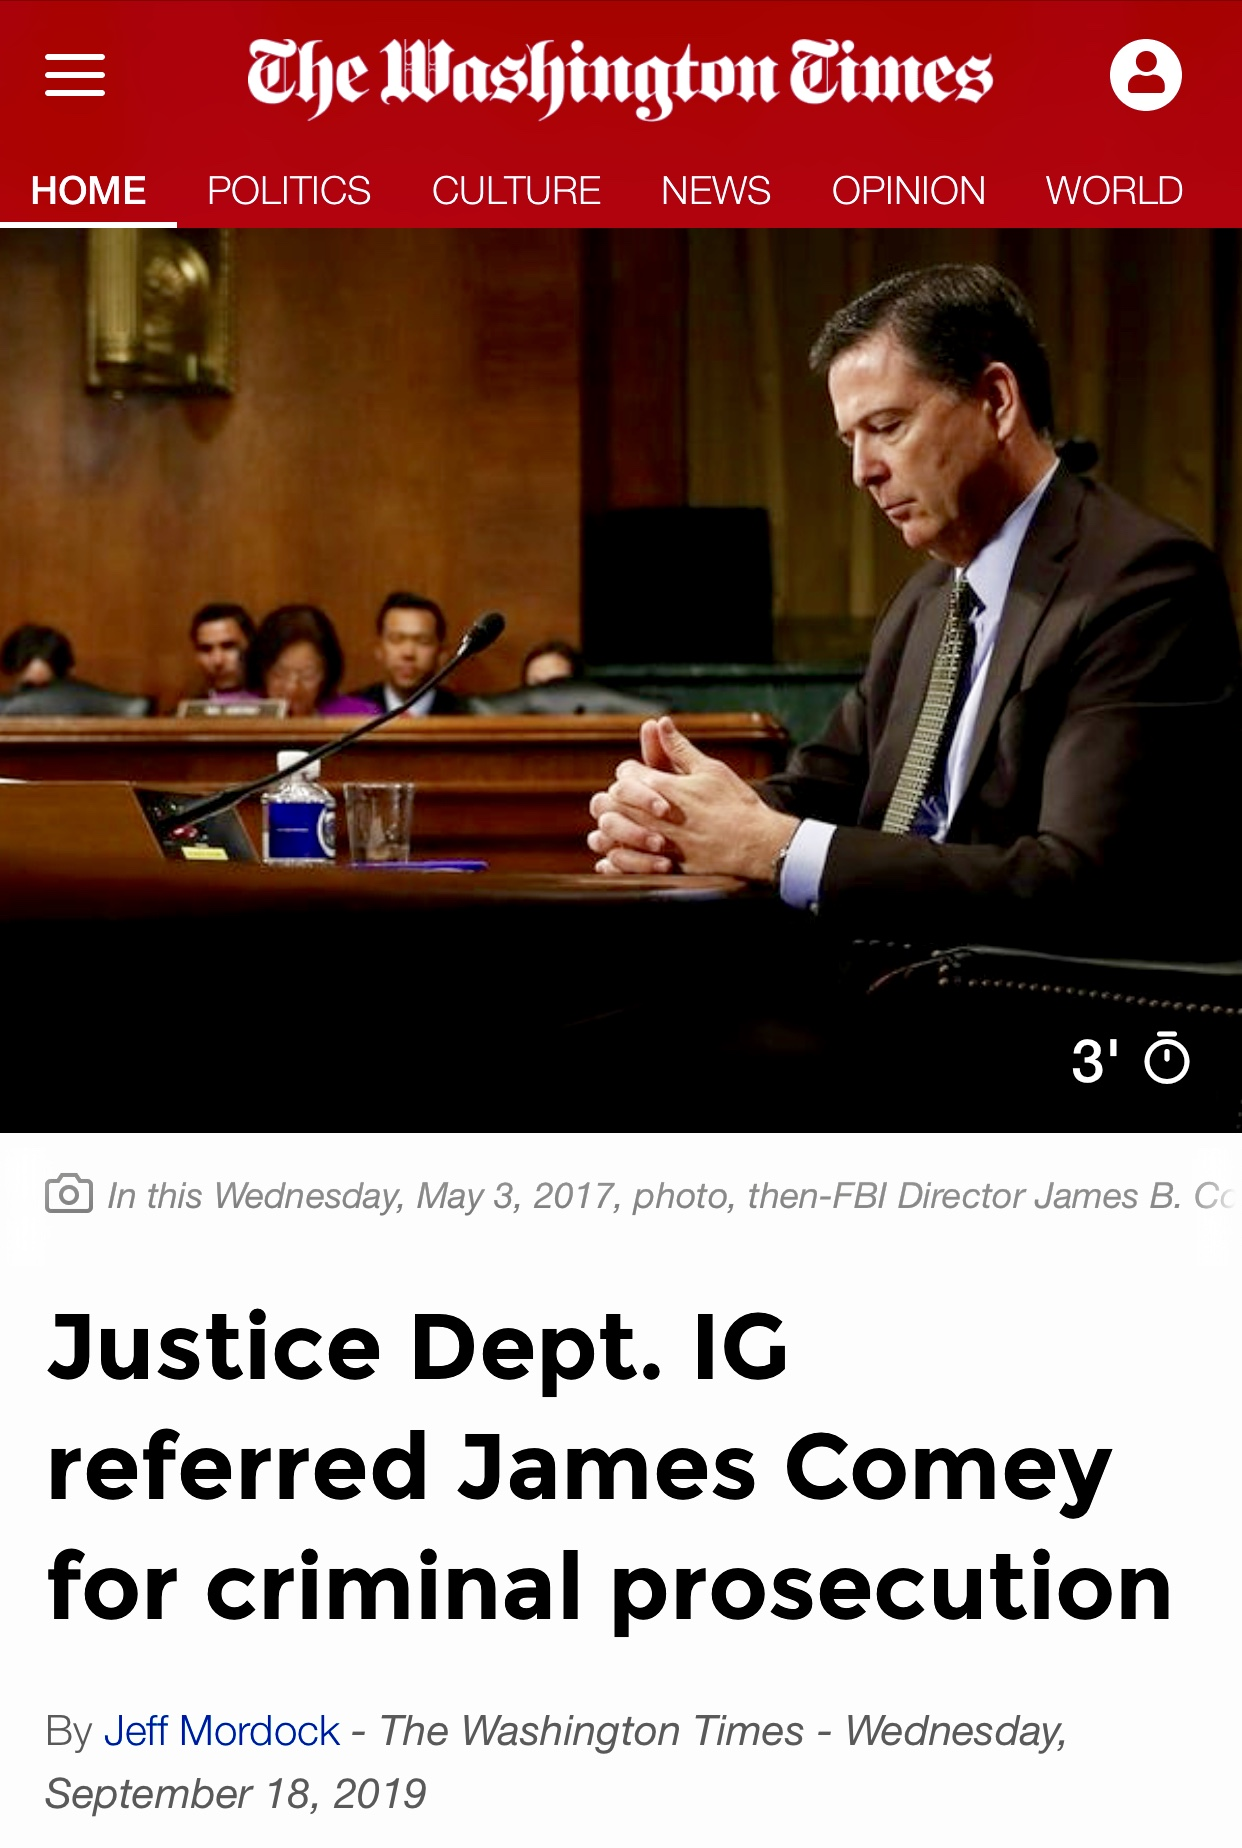 James Comey referred for criminal prosecution by Justice Department IG – Washington Times